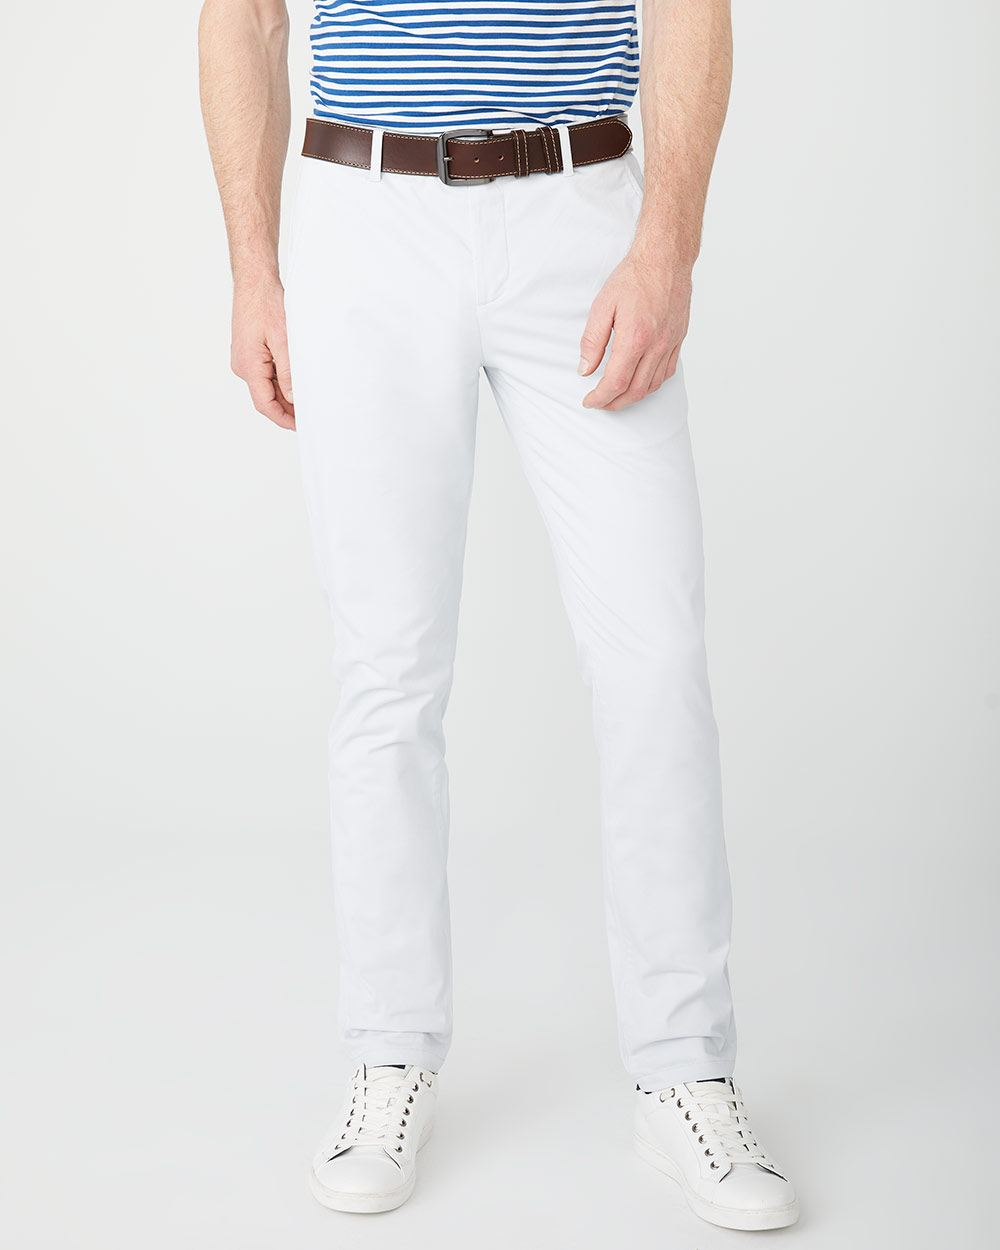 Slim fit chino pant - 30''